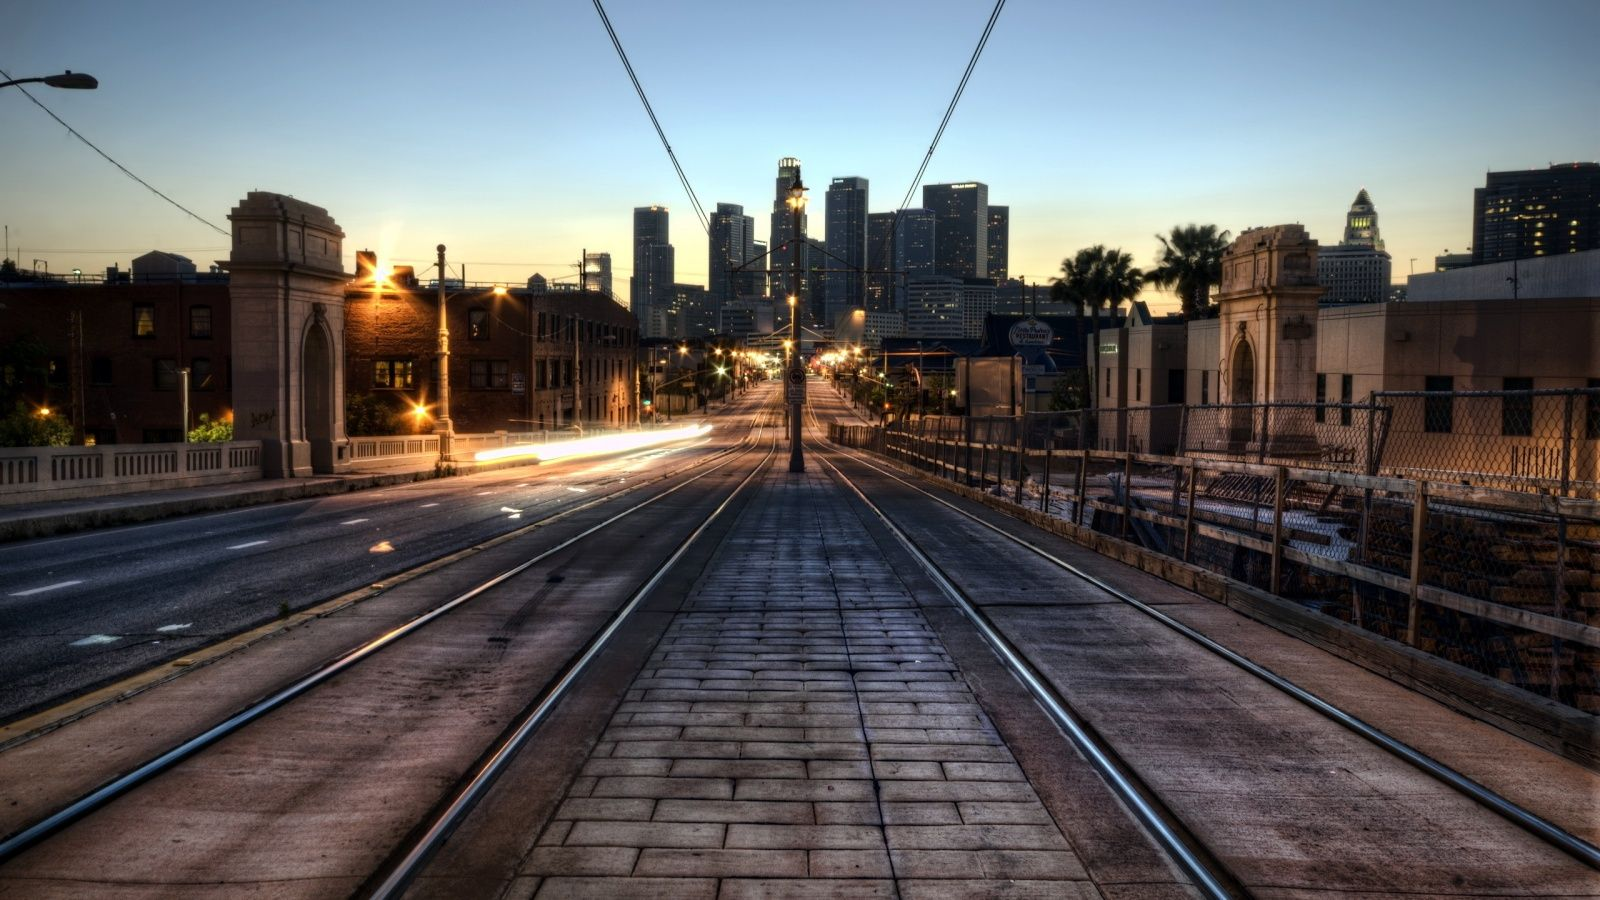 Downtown L - Ipad Wallpaper Los Angeles , HD Wallpaper & Backgrounds